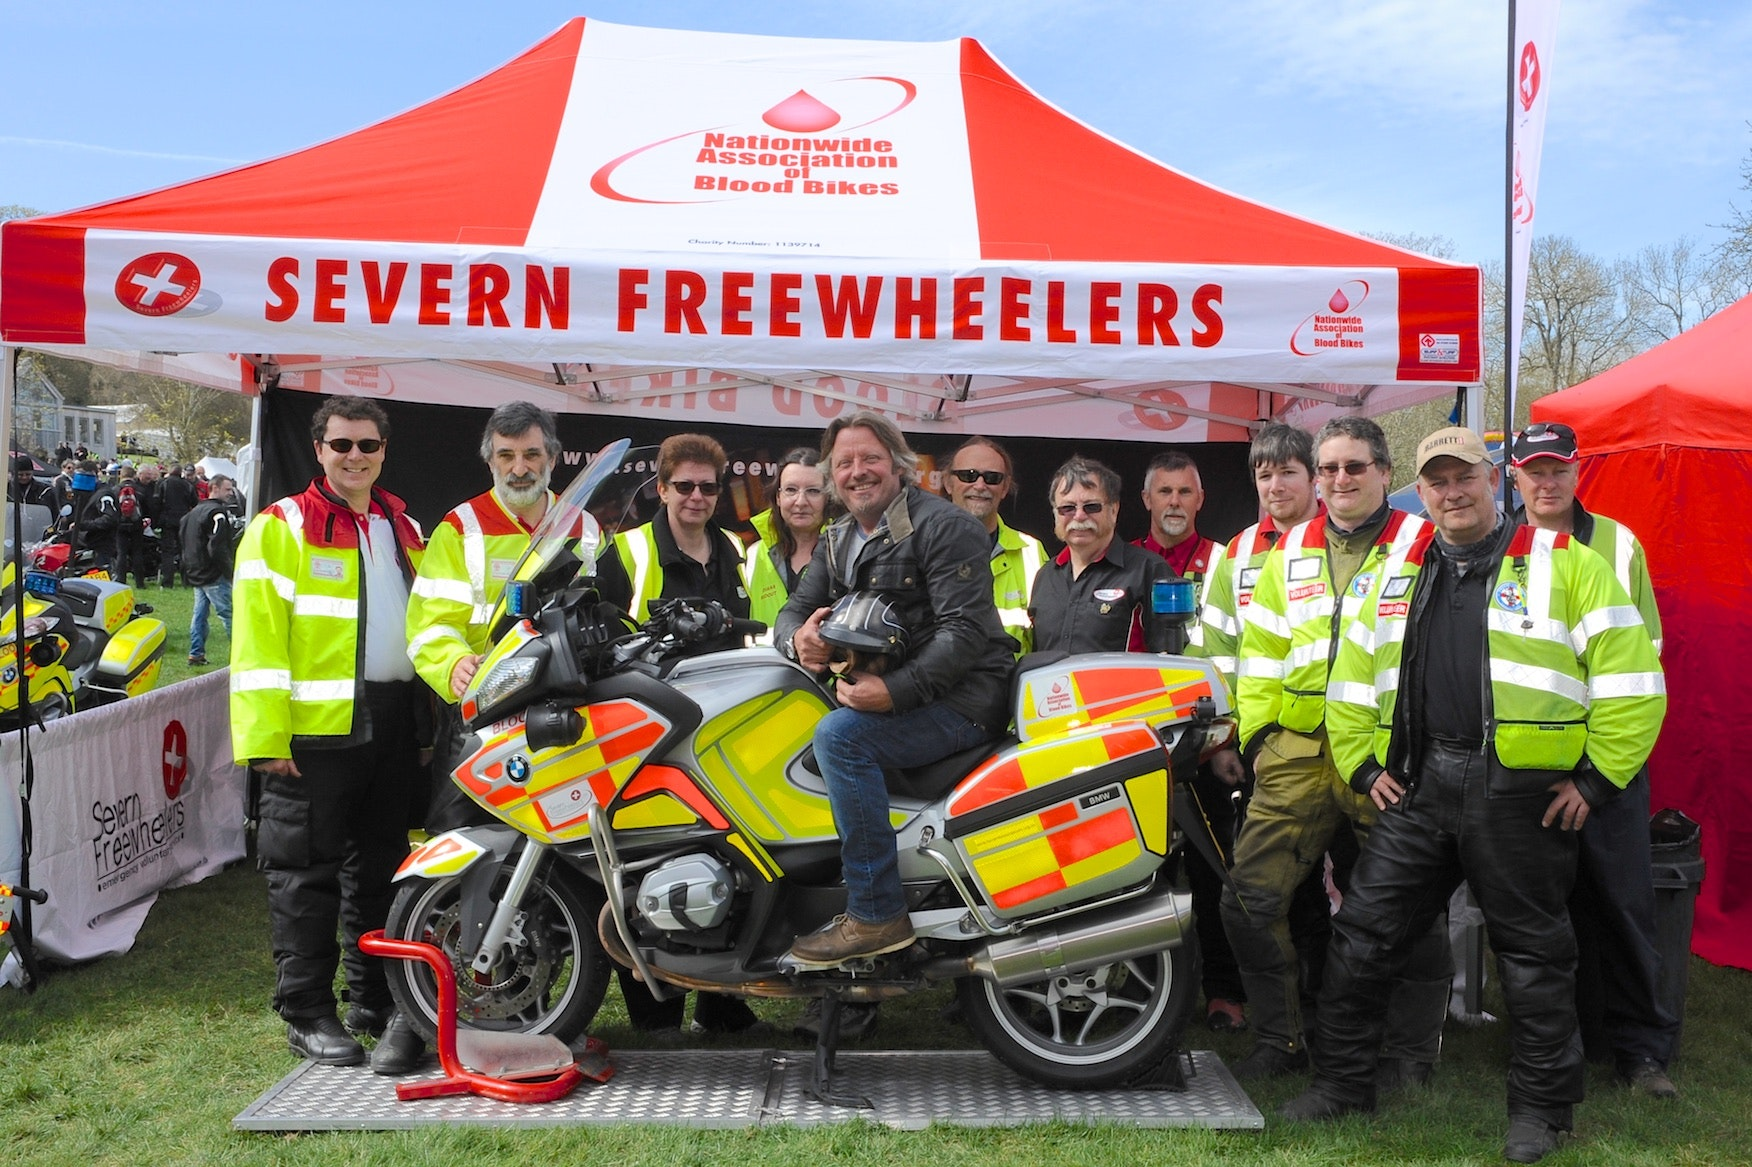 Charley boorman with blood bikers   credit geoff robinson